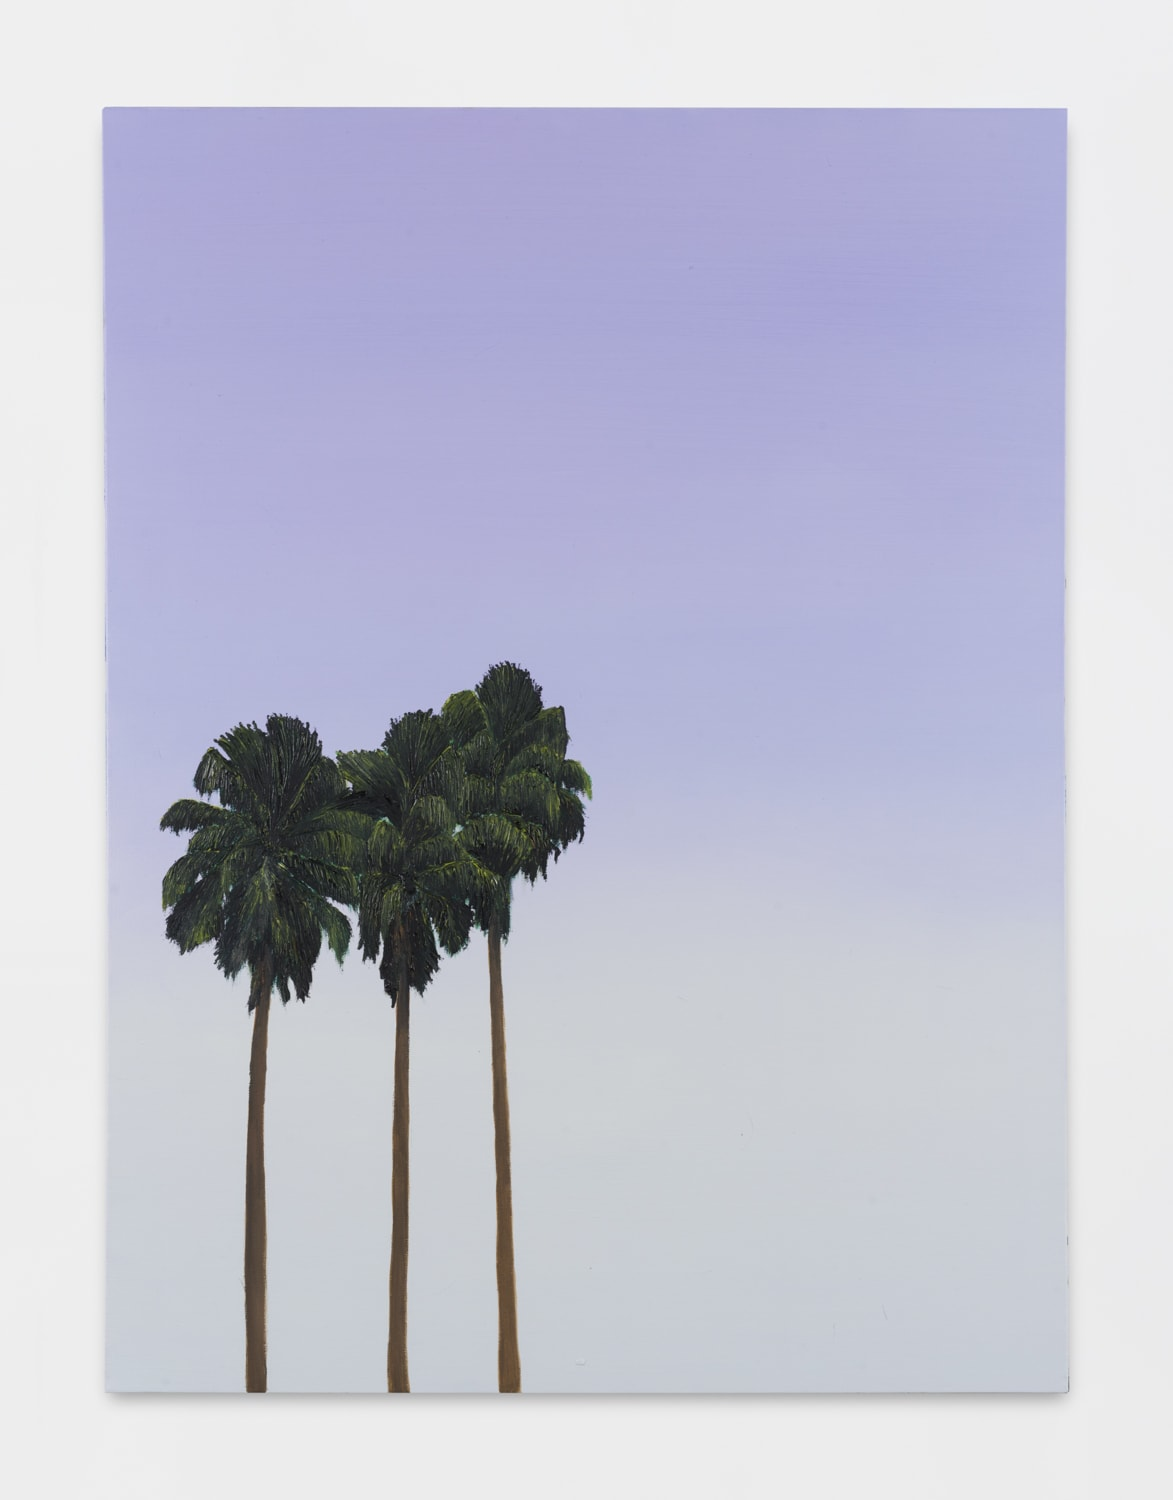 Alec Egan, Palms at Dusk, 2019